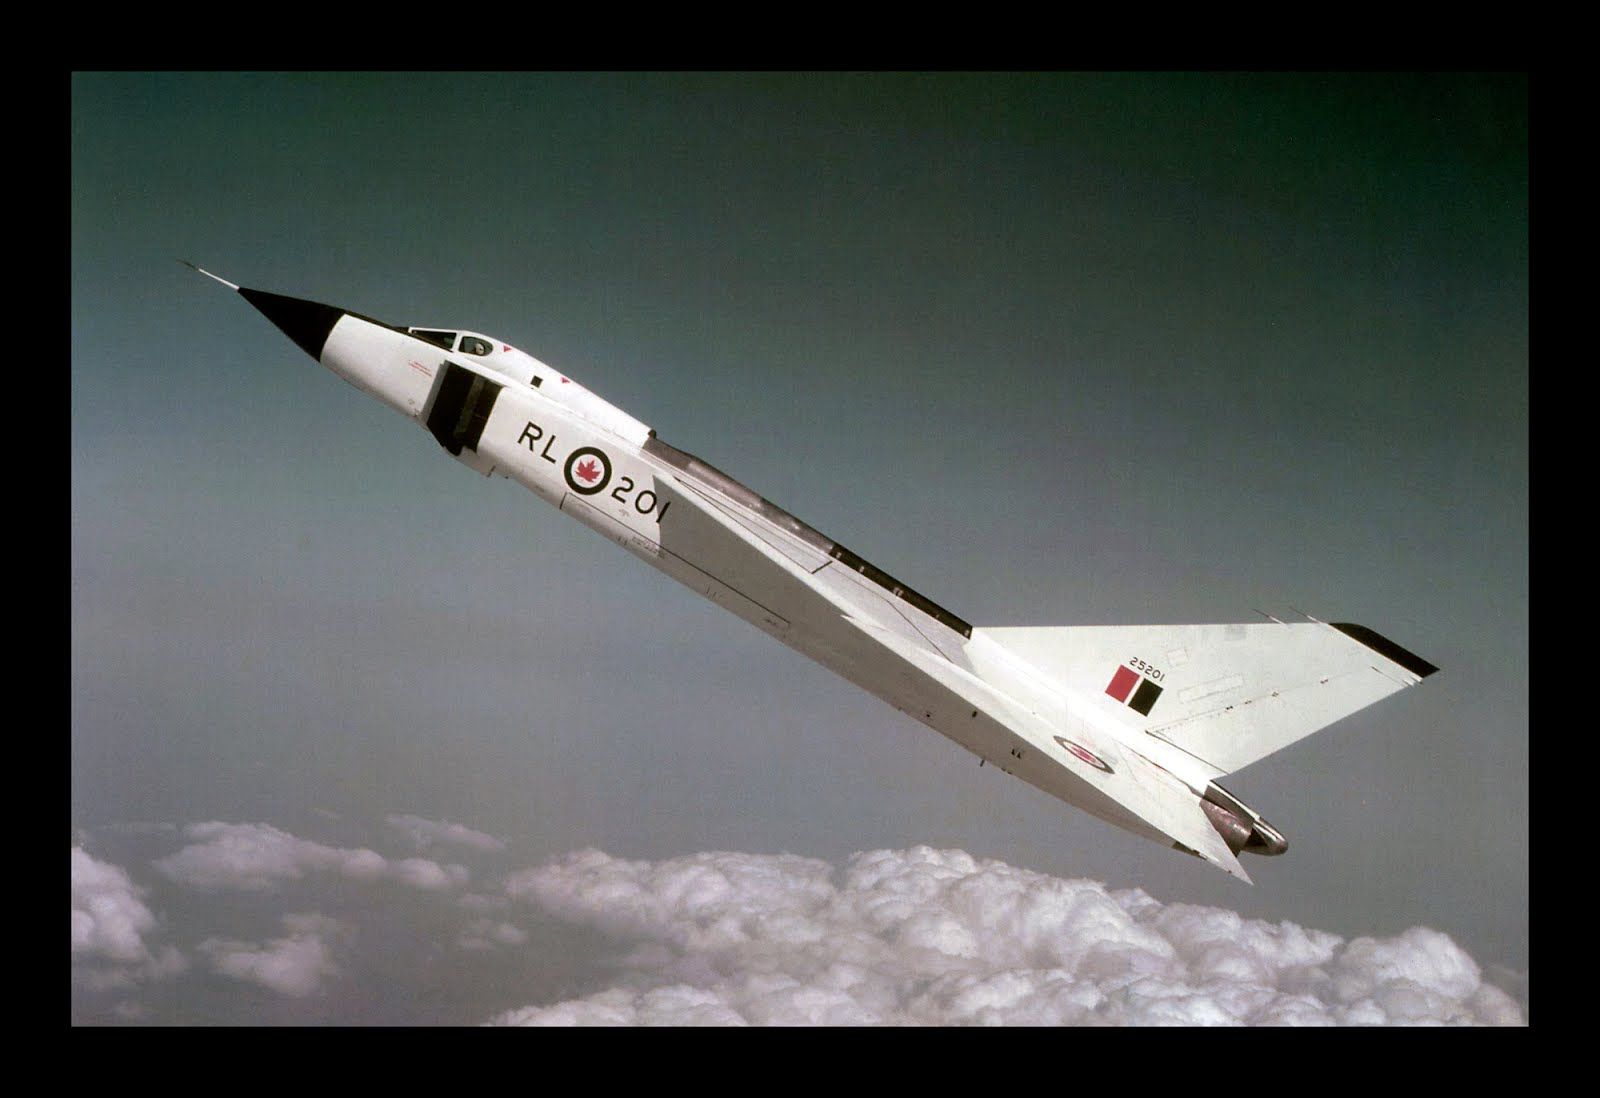 The Avro Arrow failed to soar, but it woke up the world to Canada's brightest minds